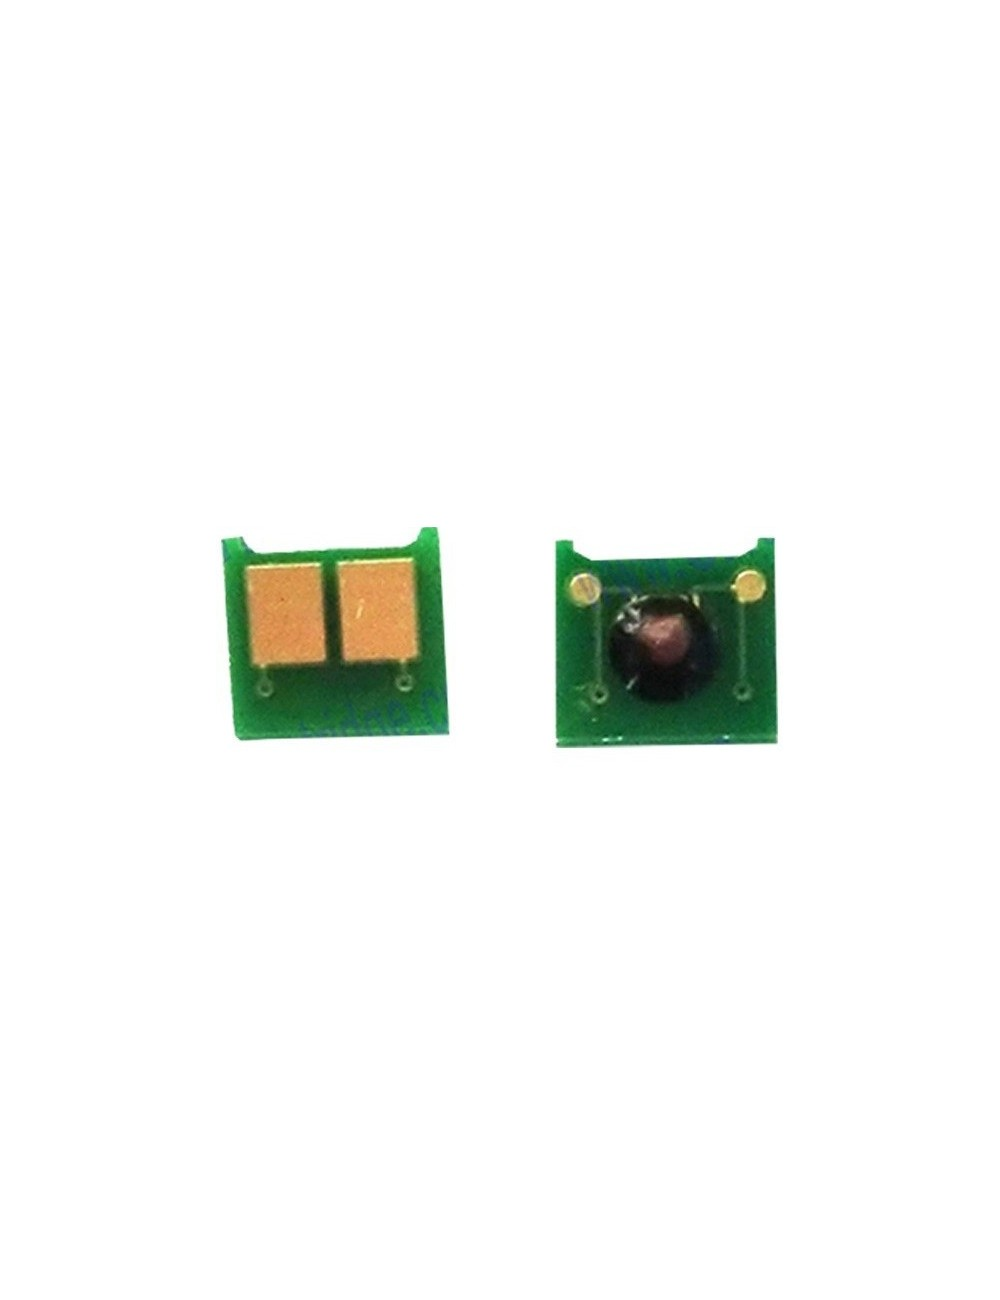 Chip HP CP 3525/CM3530 YELLOW 7K